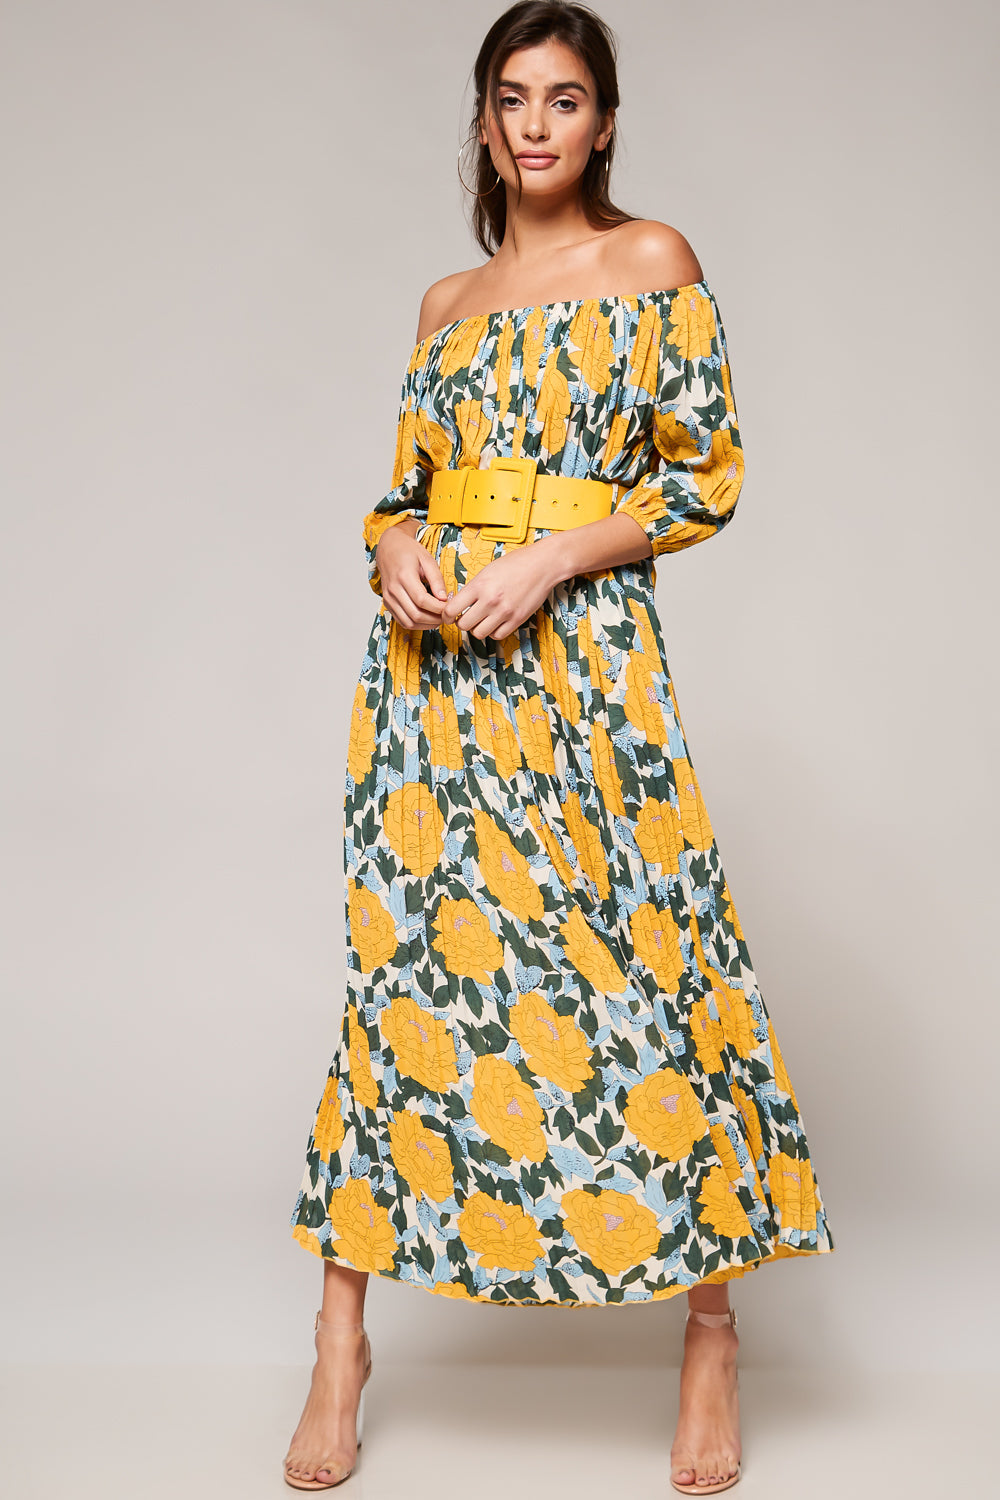 Chrysanthemum Pleated Off-Shoulder Maxi Dress - Geegeebae